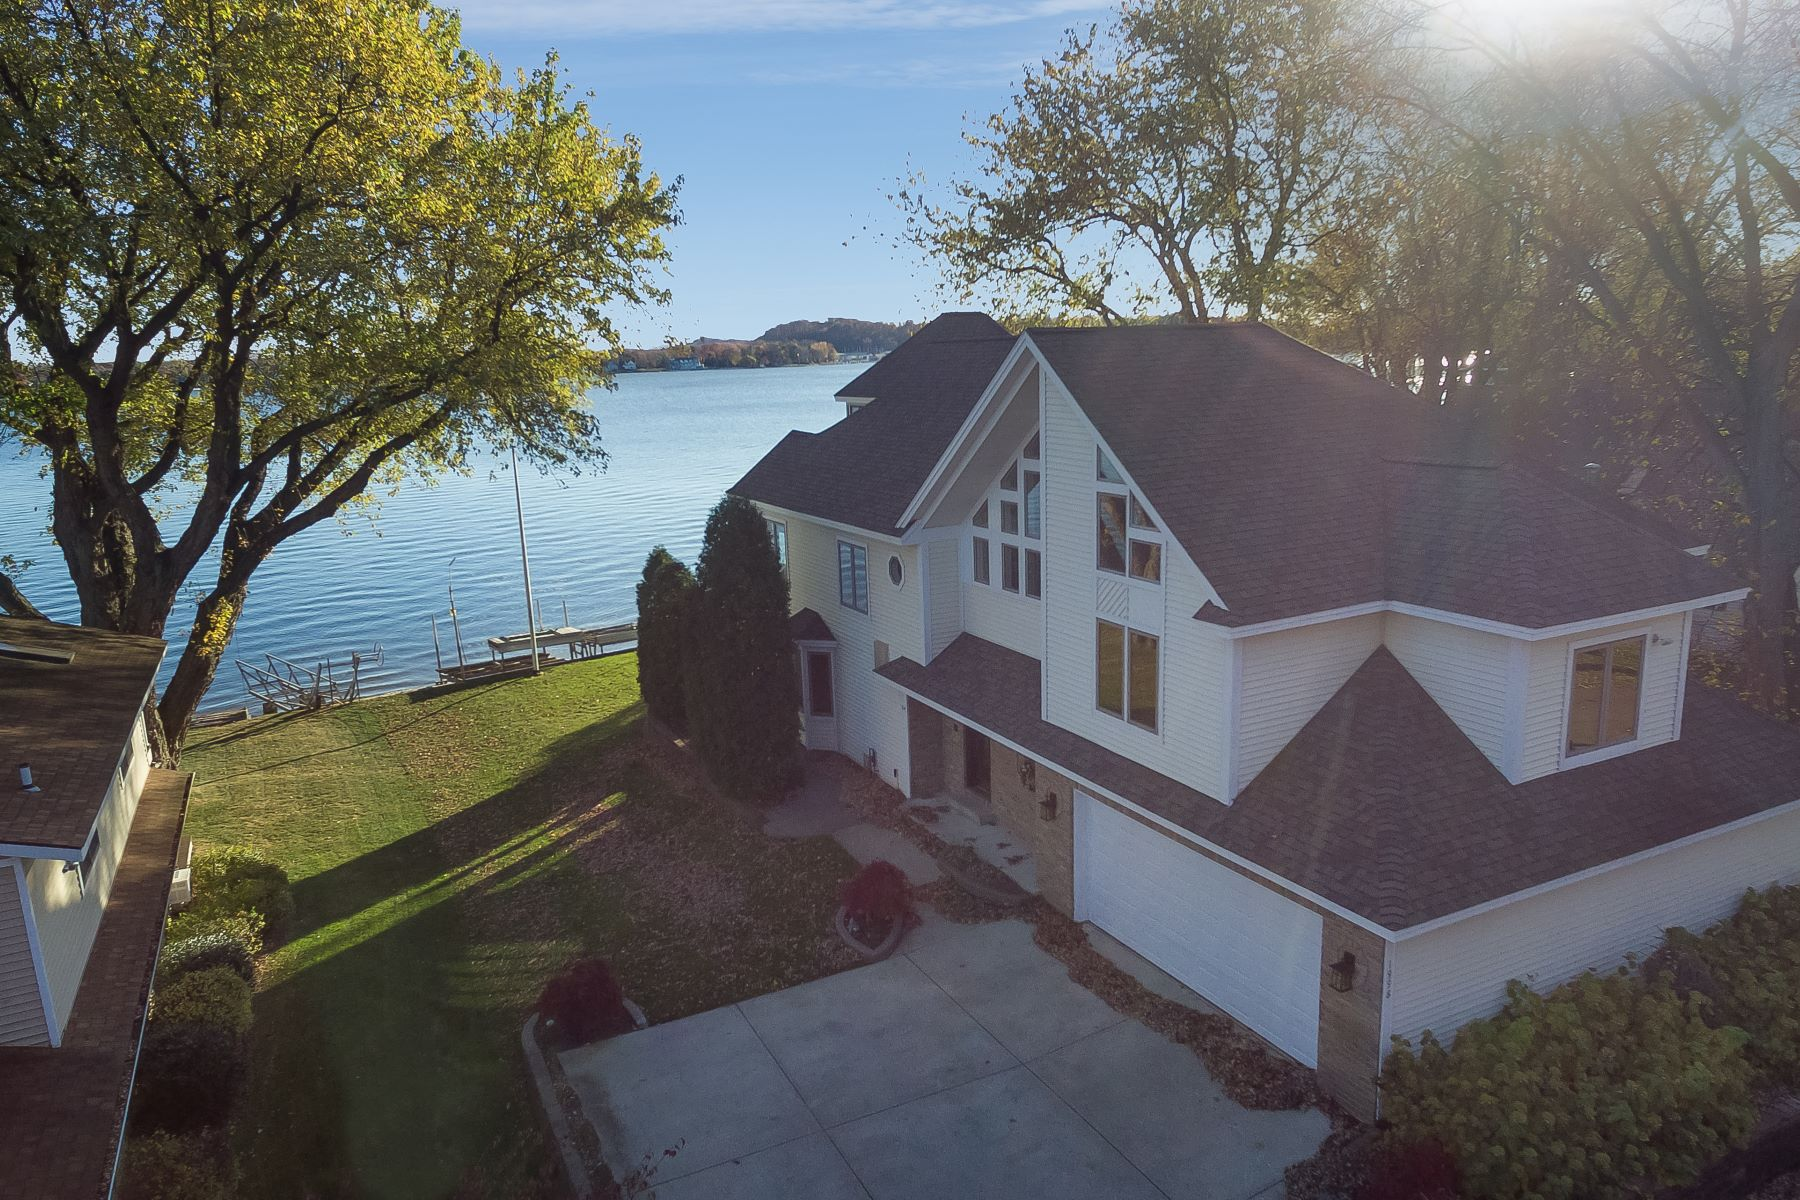 Single Family Home for Sale at Custom Home Built With Spectacular Views Of Lake Macatawa 1998 Lake Street Holland, Michigan, 49424 United States